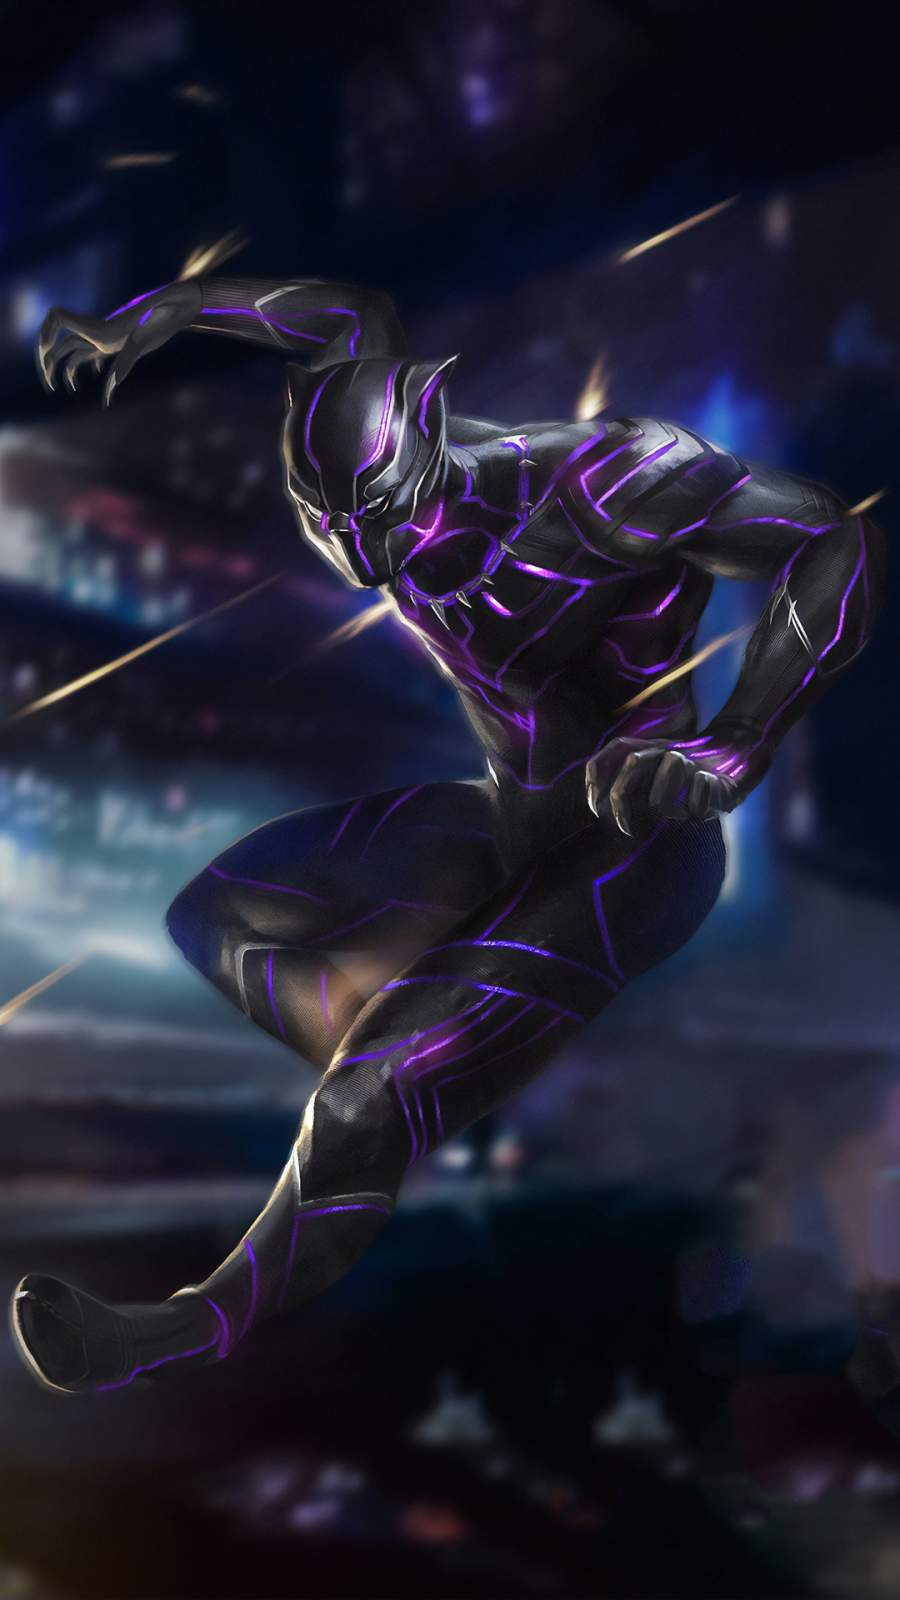 Black Panther 4k New Iphone Wallpaper Iphone Wallpapers